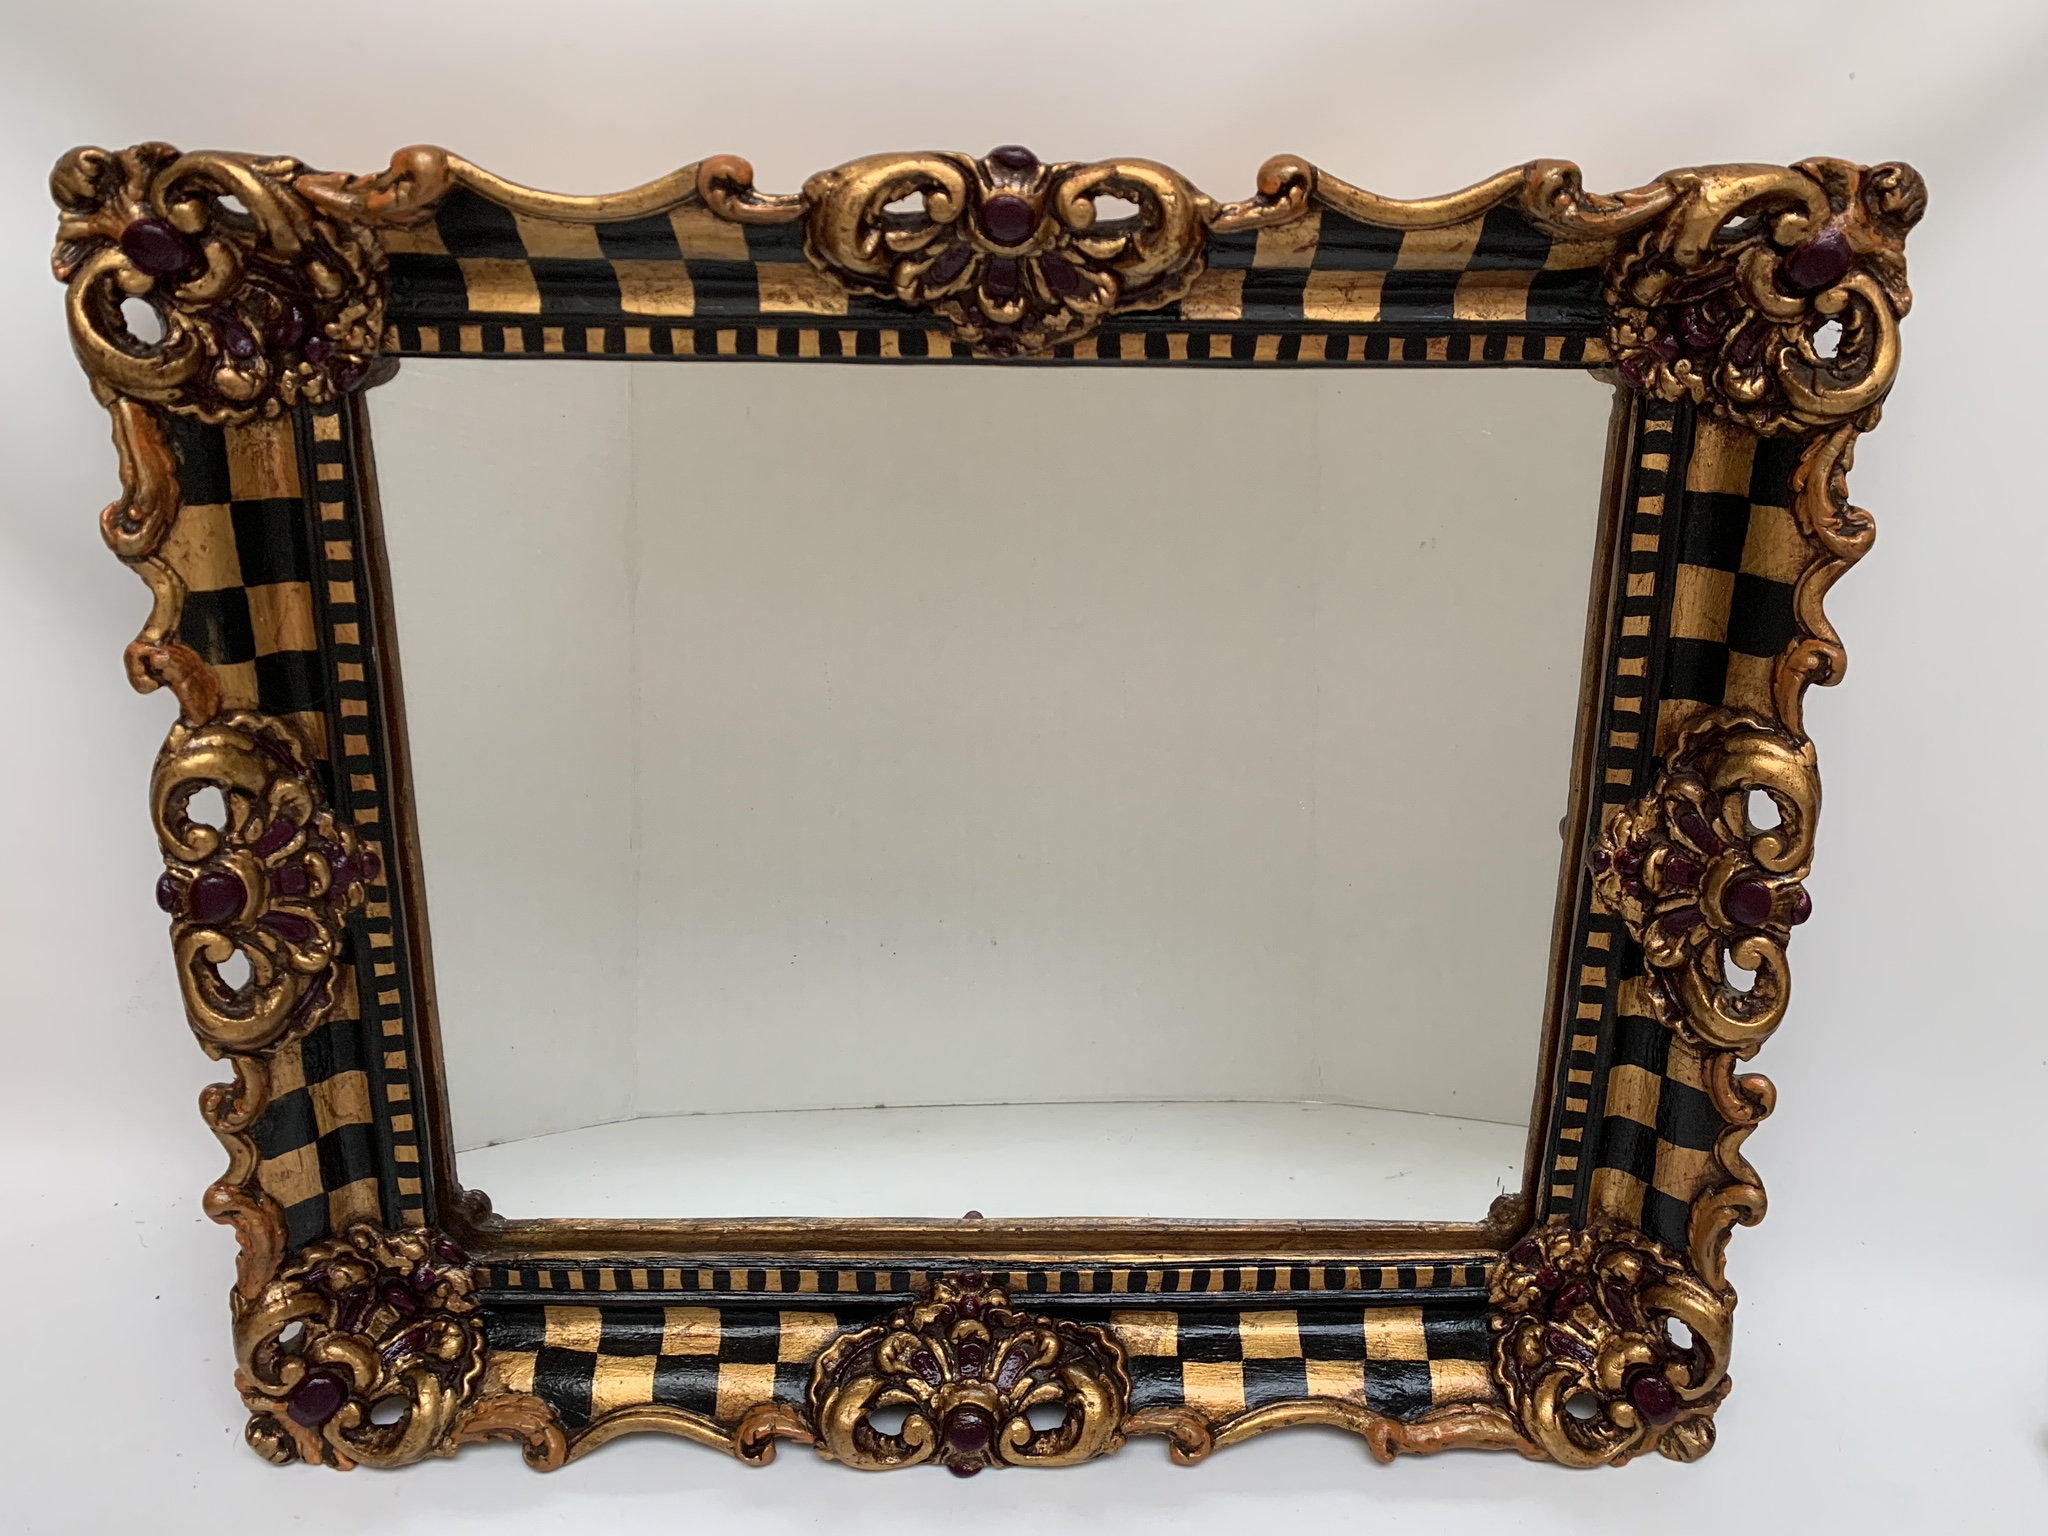 Latest Whimsical Checked Gold Gilt Wall Mirror Hand Painted Alice In Wonderland  Decor Throughout Whimsical Wall Mirrors (Gallery 8 of 20)